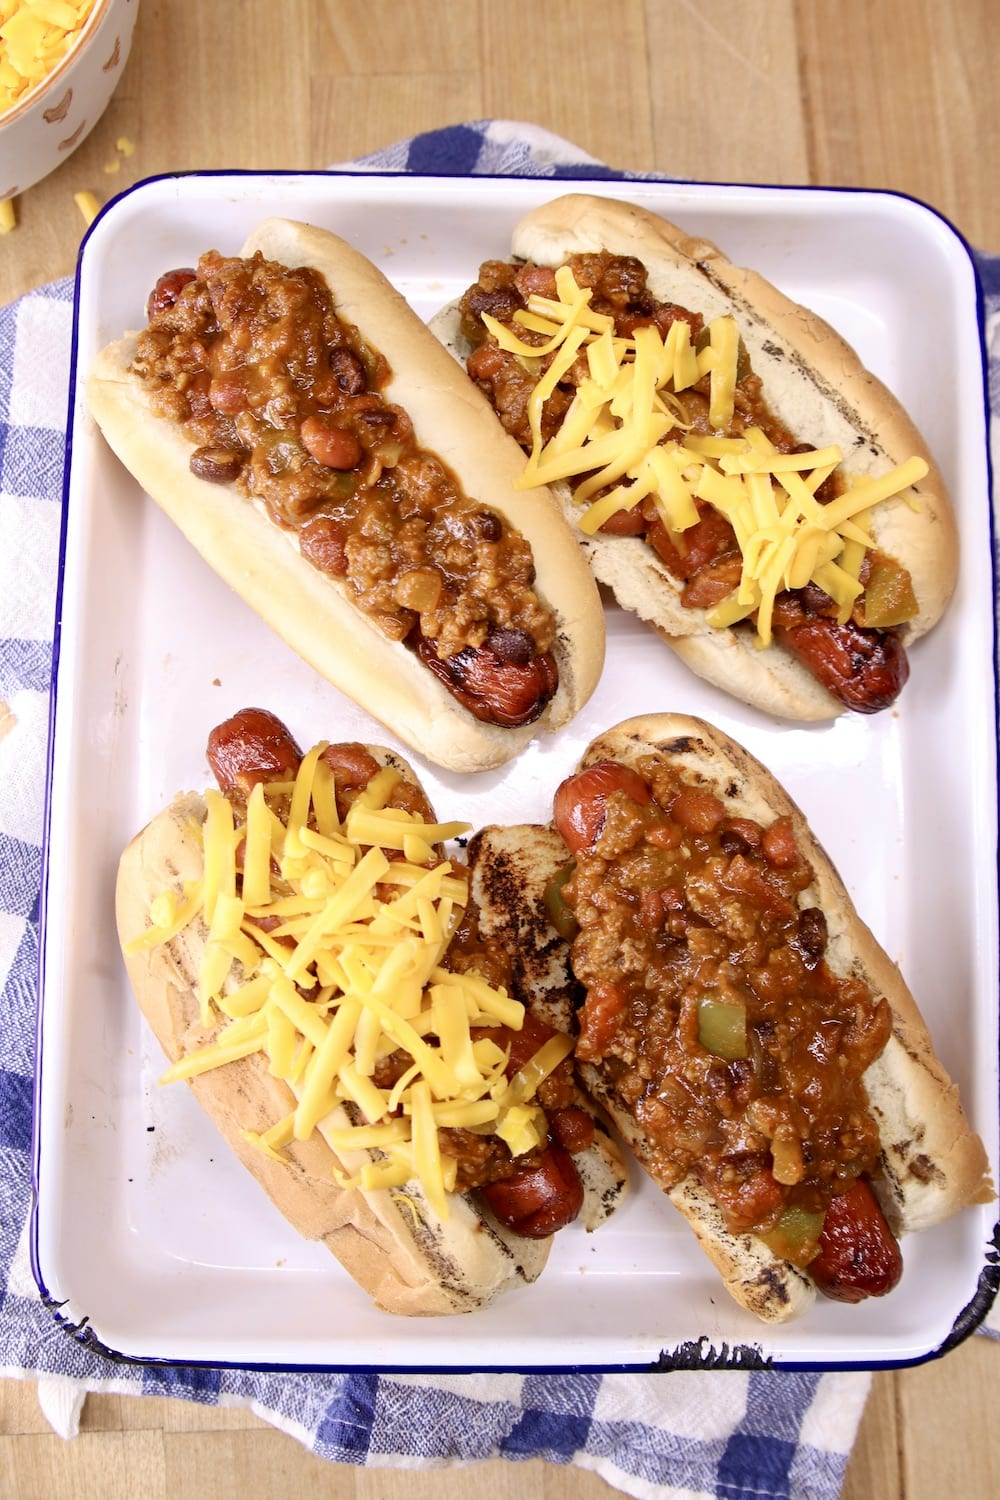 4 hot dogs in a pan, covered with chili and cheese